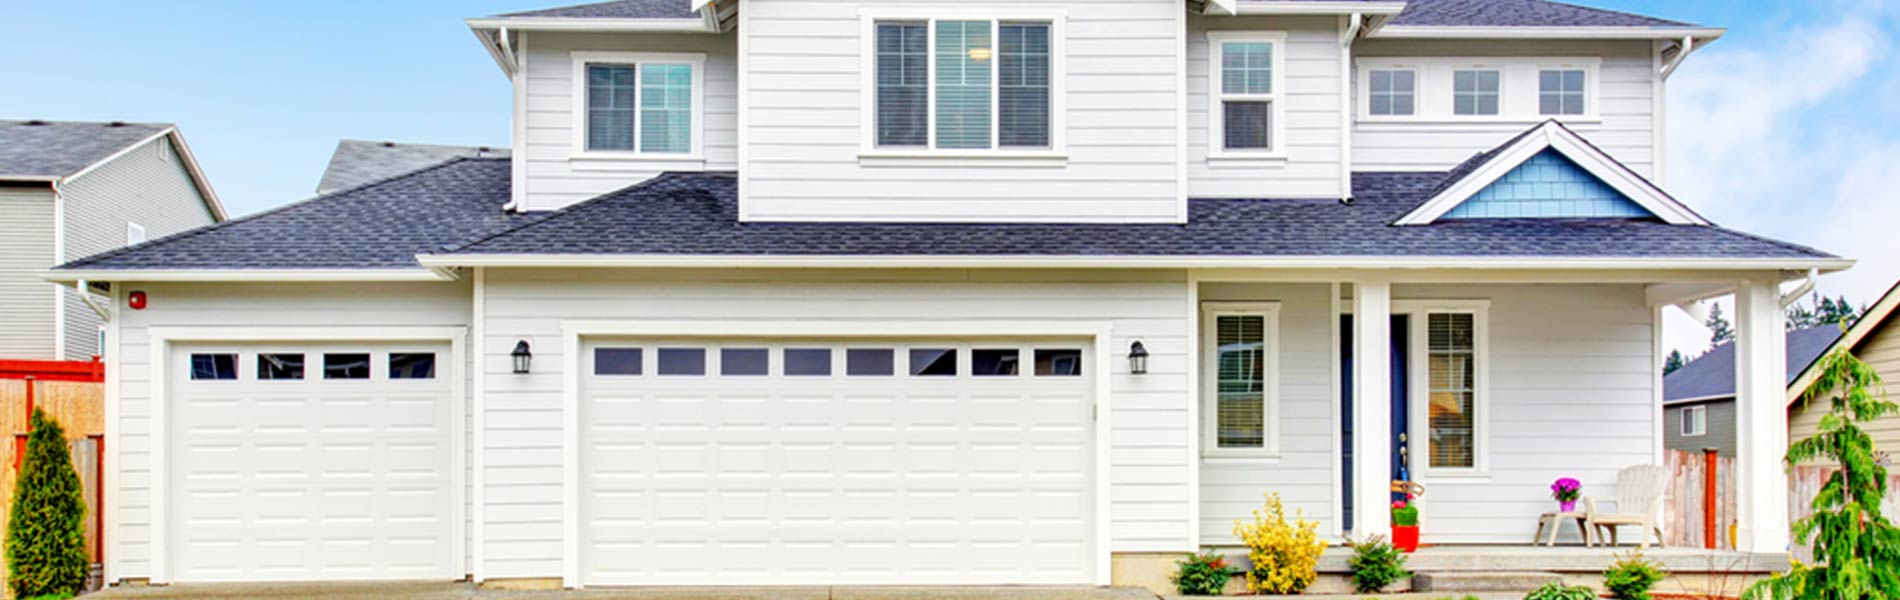 Galaxy Garage Door Service Glendale, AZ 877-448-3856